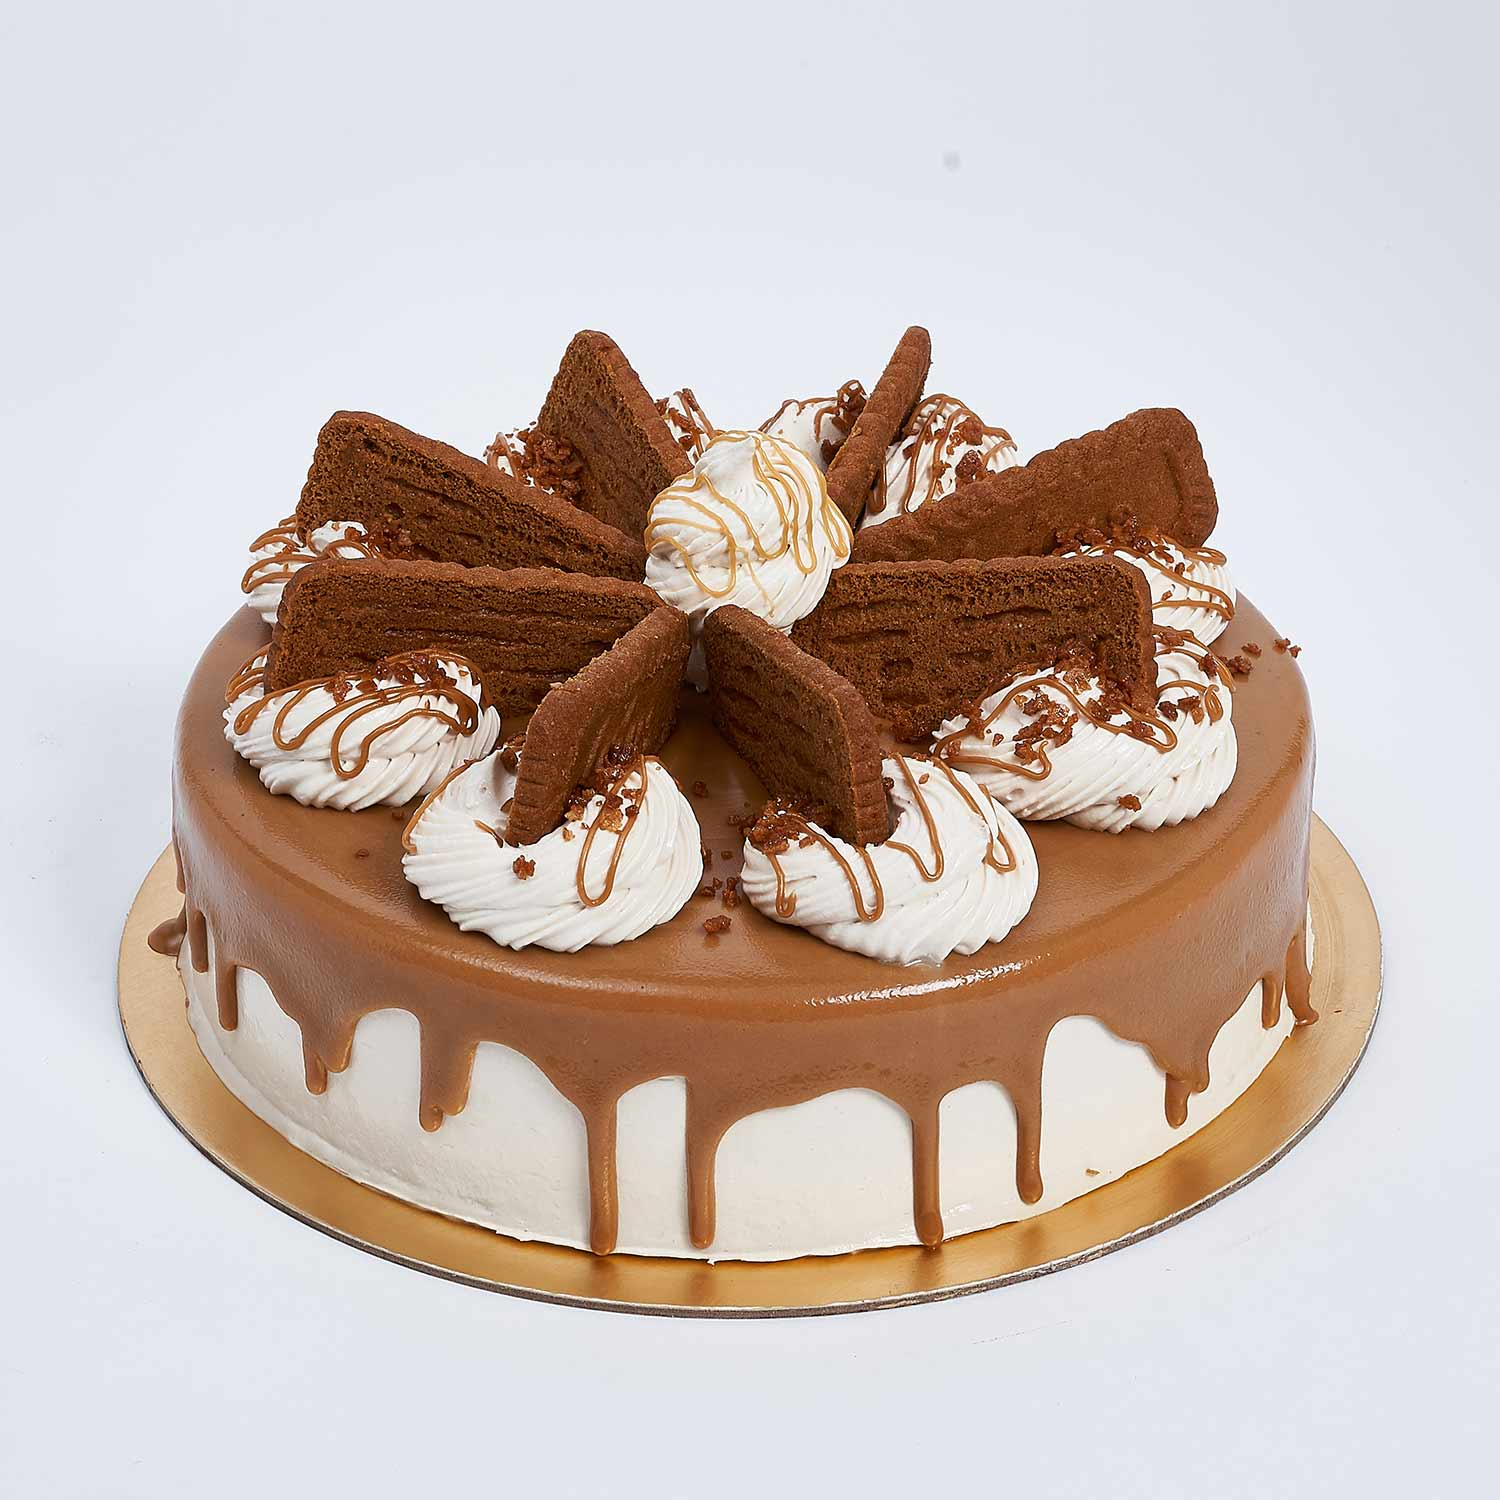 Heavenly Lotus Biscoff Cake: Eggless Cakes for Birthday